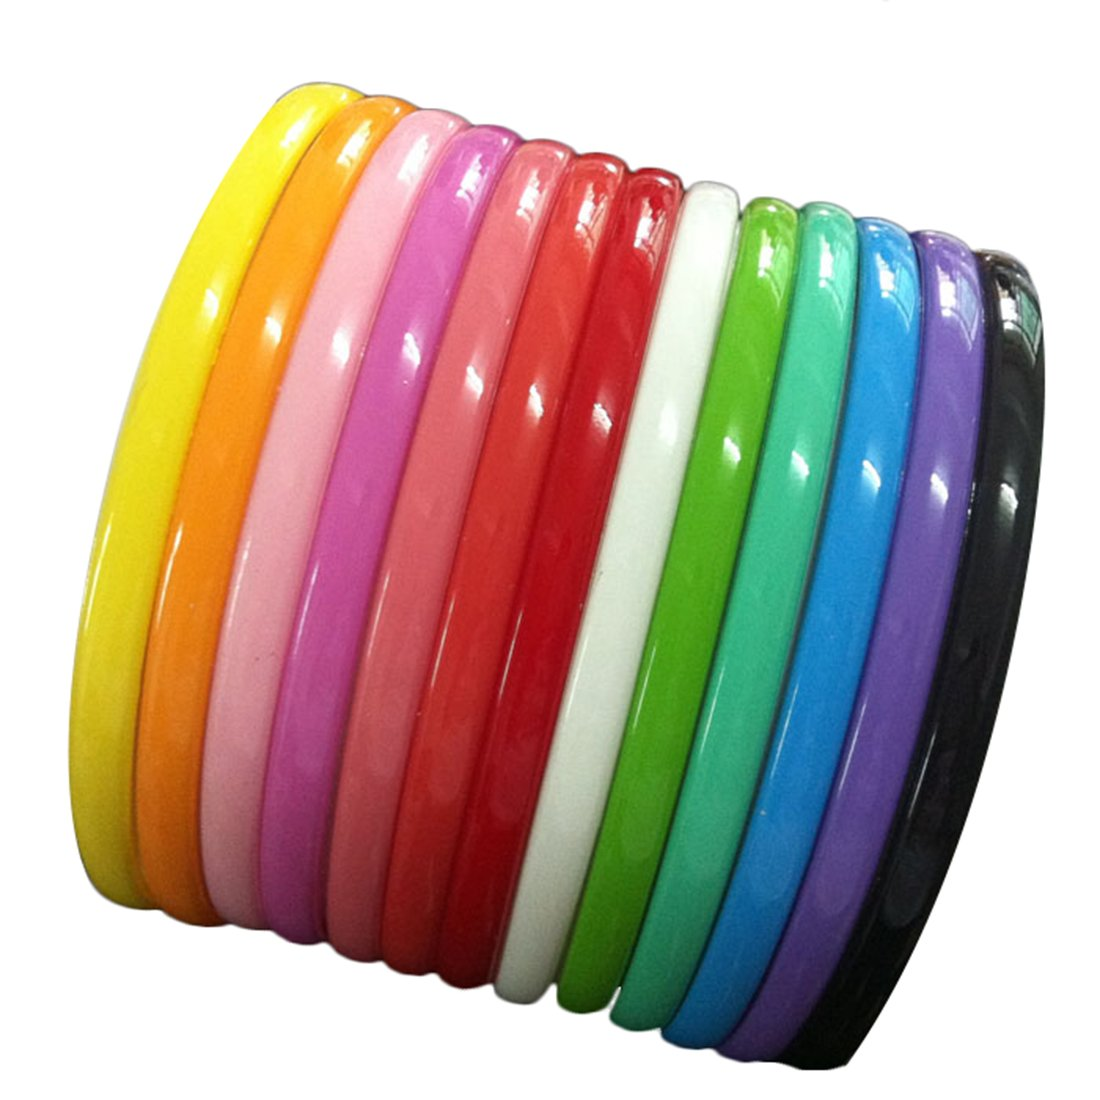 Amazon.com   Yazon 8mm Colorful Plastic Teeth Headbands Girl s Women  Headband Pack of 16   Beauty 0168cbee150